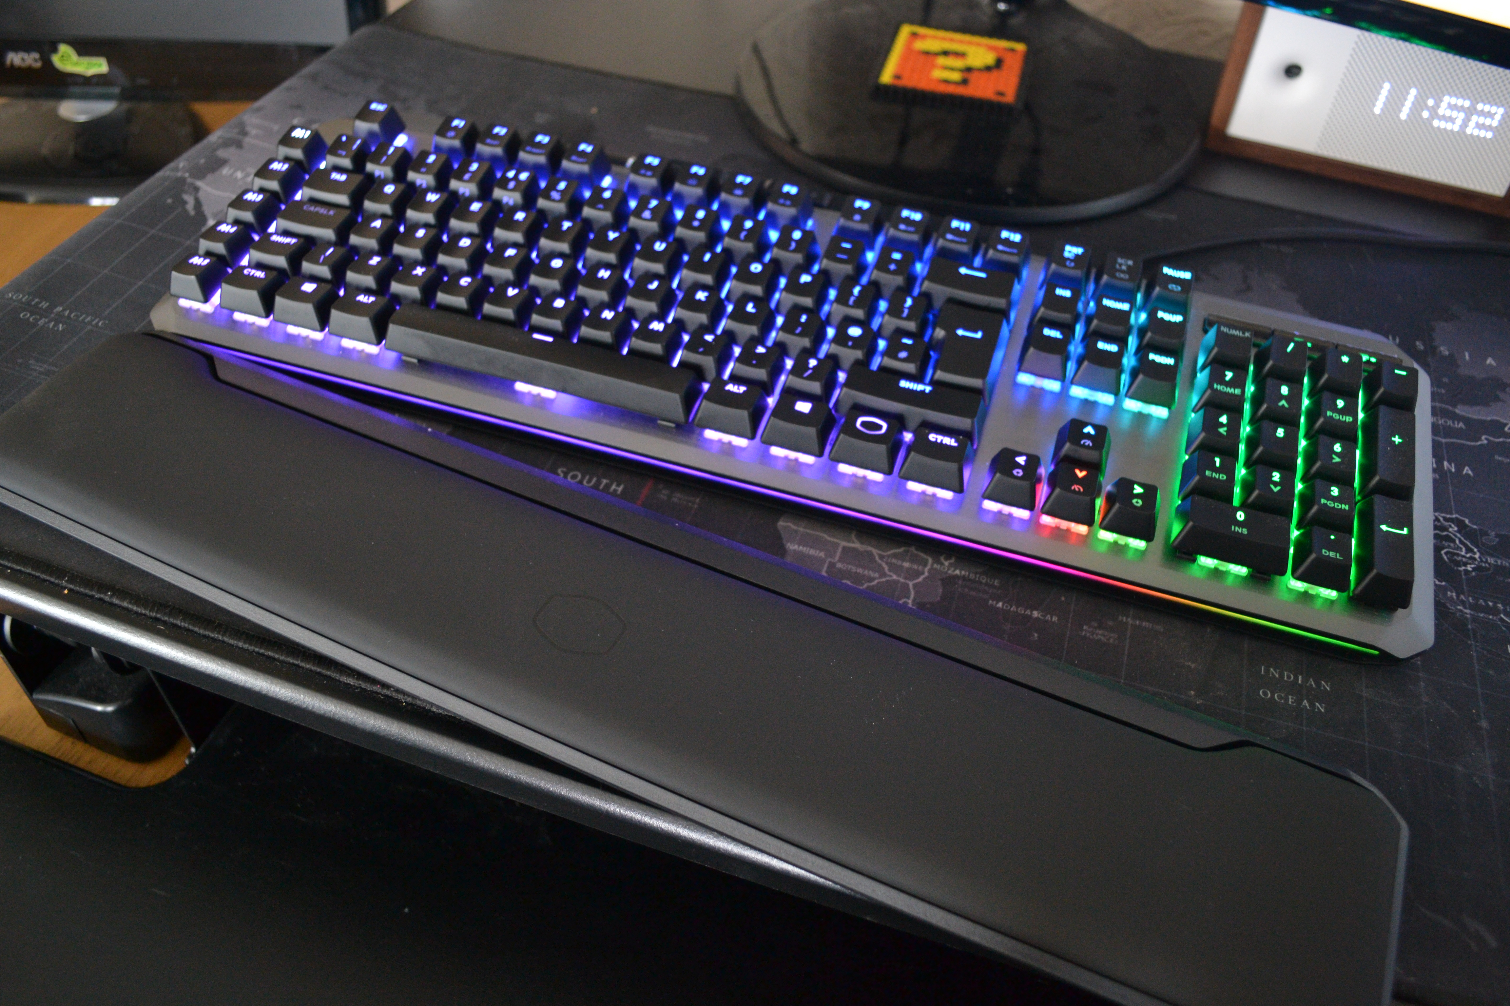 and RGB Illumination Precision Wheels Cooler Master MK850 Gaming Mechanical Keyboard with Cherry MX Switches Aimpad Technology